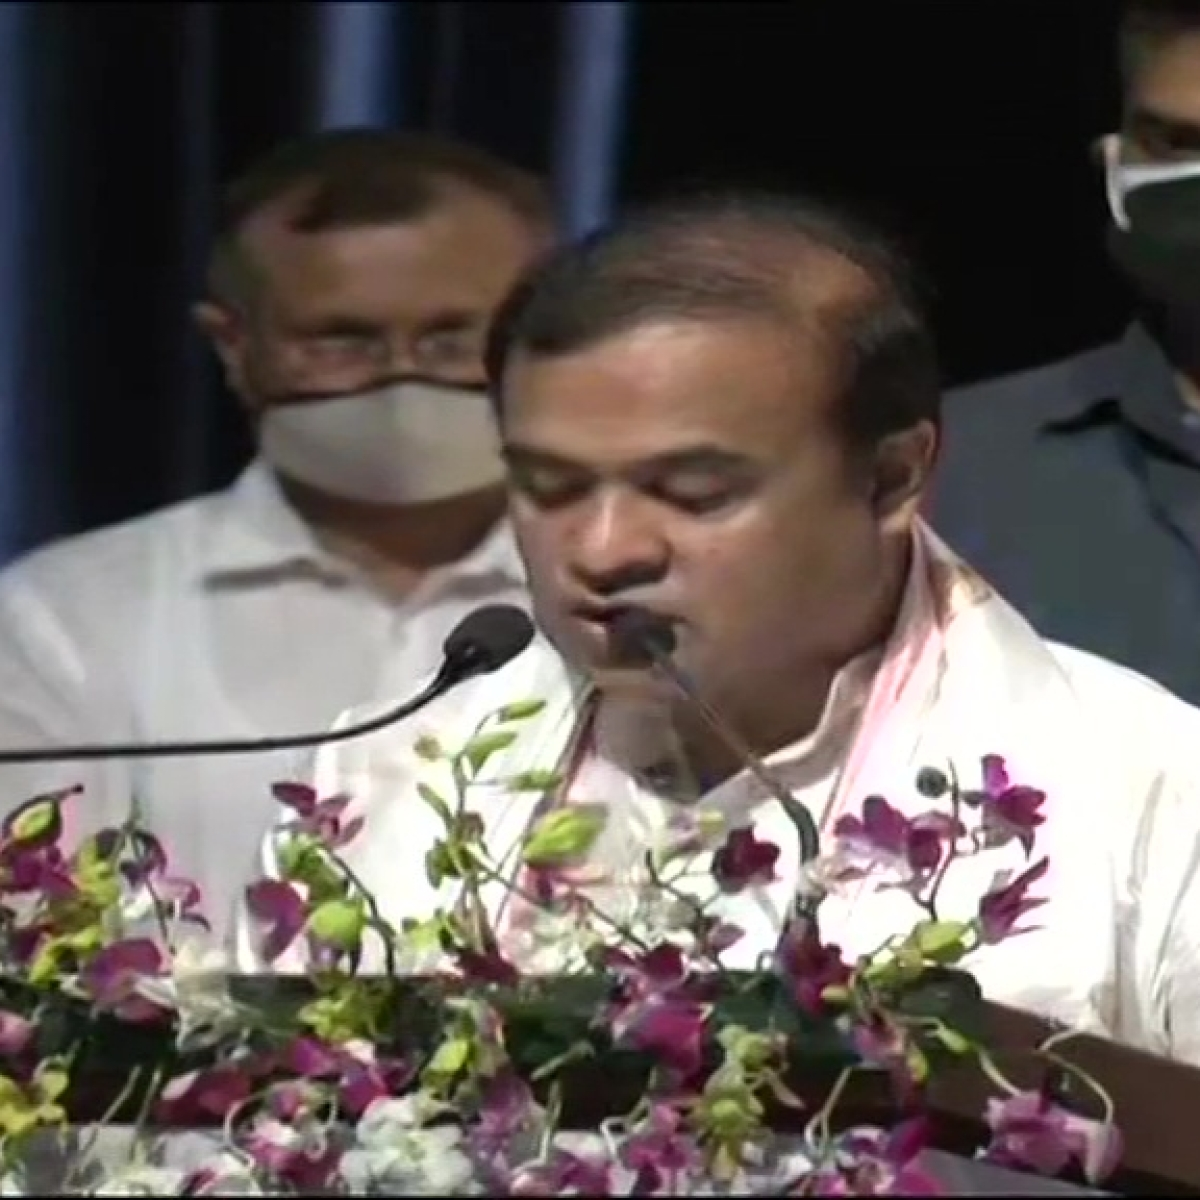 Himanta Biswa Sarma takes oath as new Chief Minister of Assam